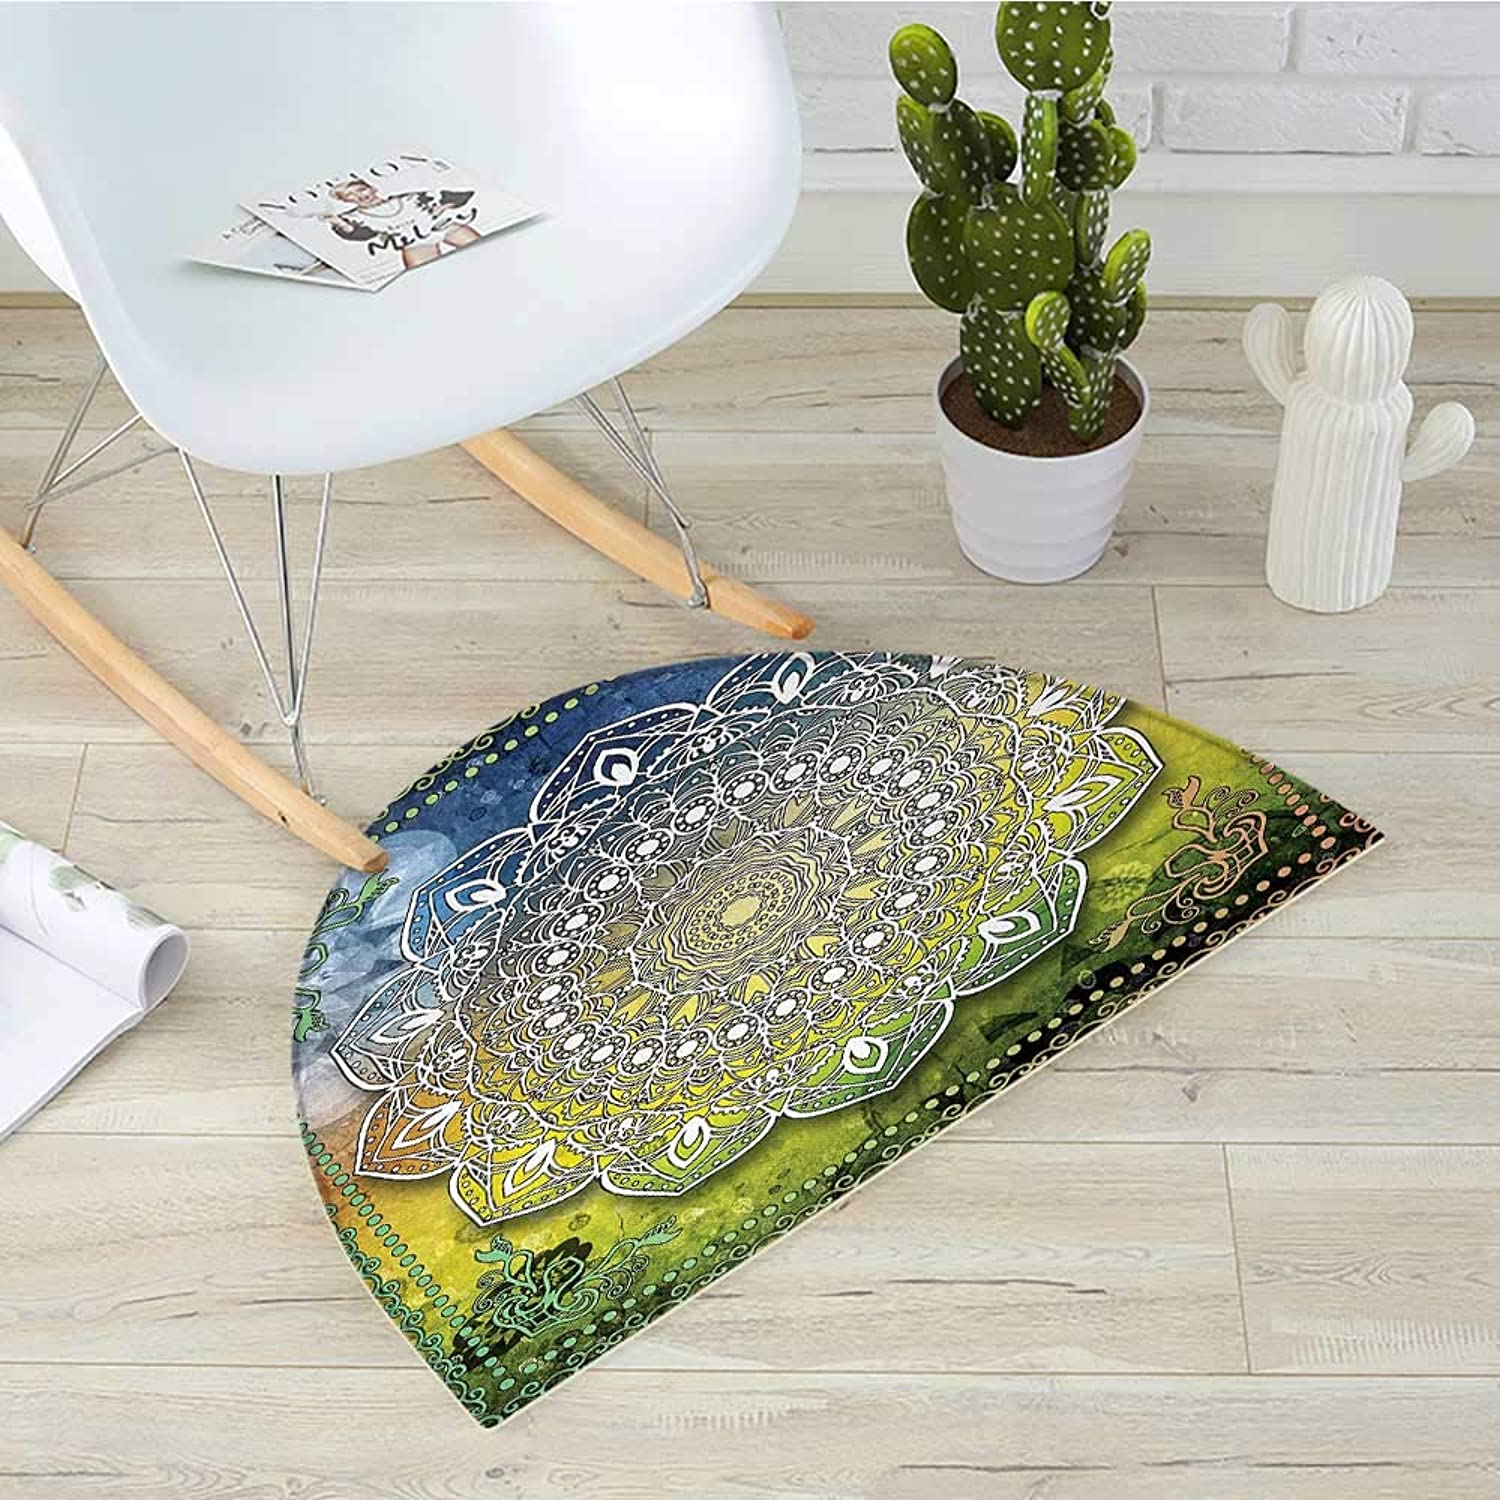 Ethnic Semicircle Doormat Mystic Asian Mandala Zen Culture Chakra Karma Calmness and Harmony Icon Boho Design Halfmoon doormats H 35.4  xD 53.1  Multicolor